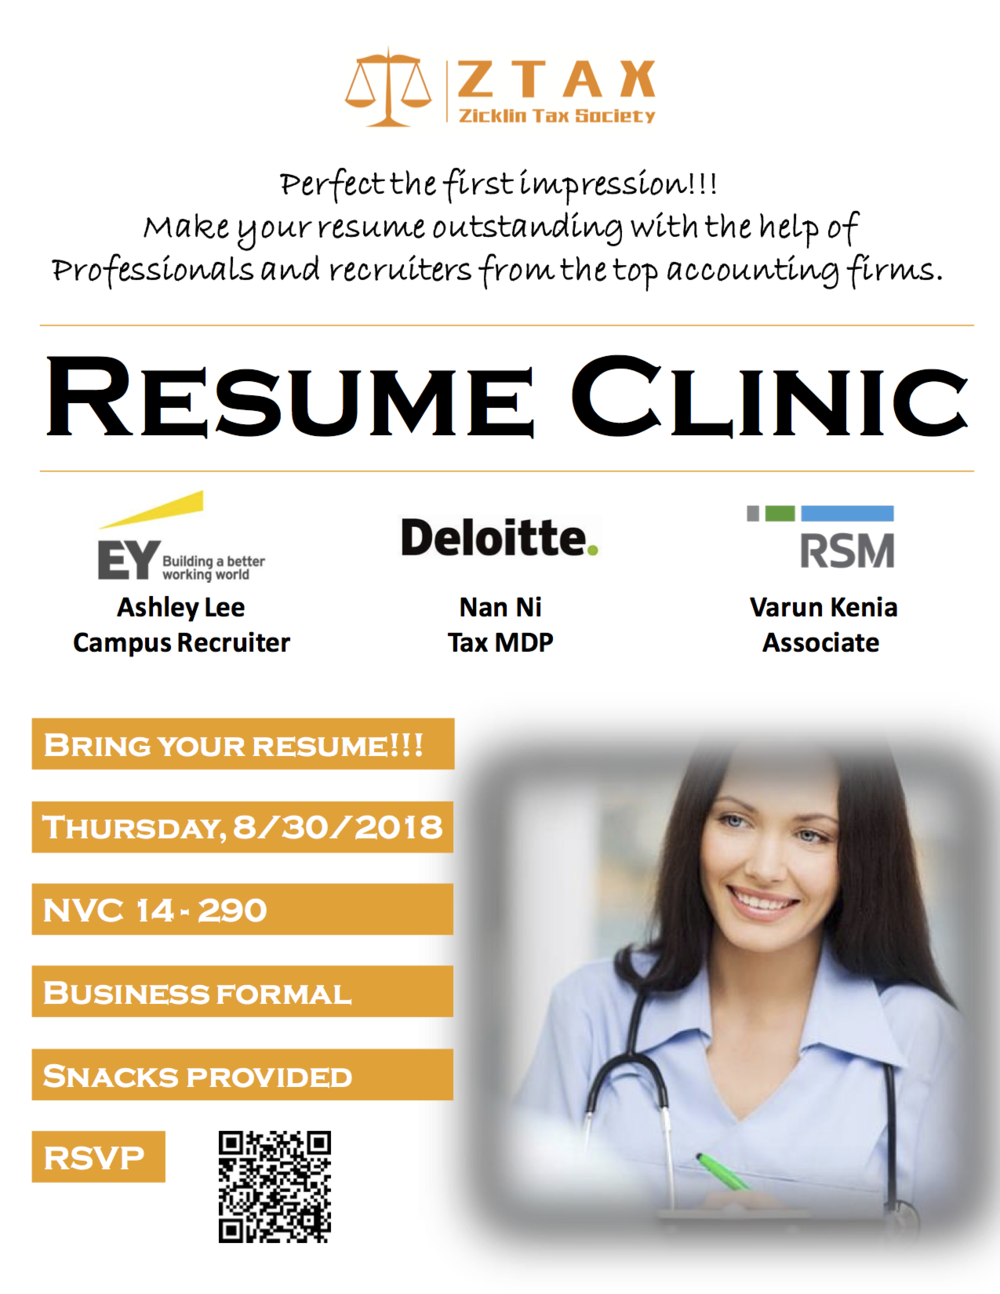 Resume clinic.png